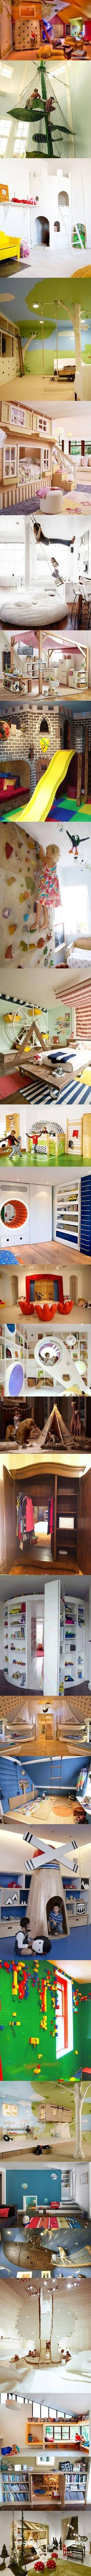 I need these rooms!